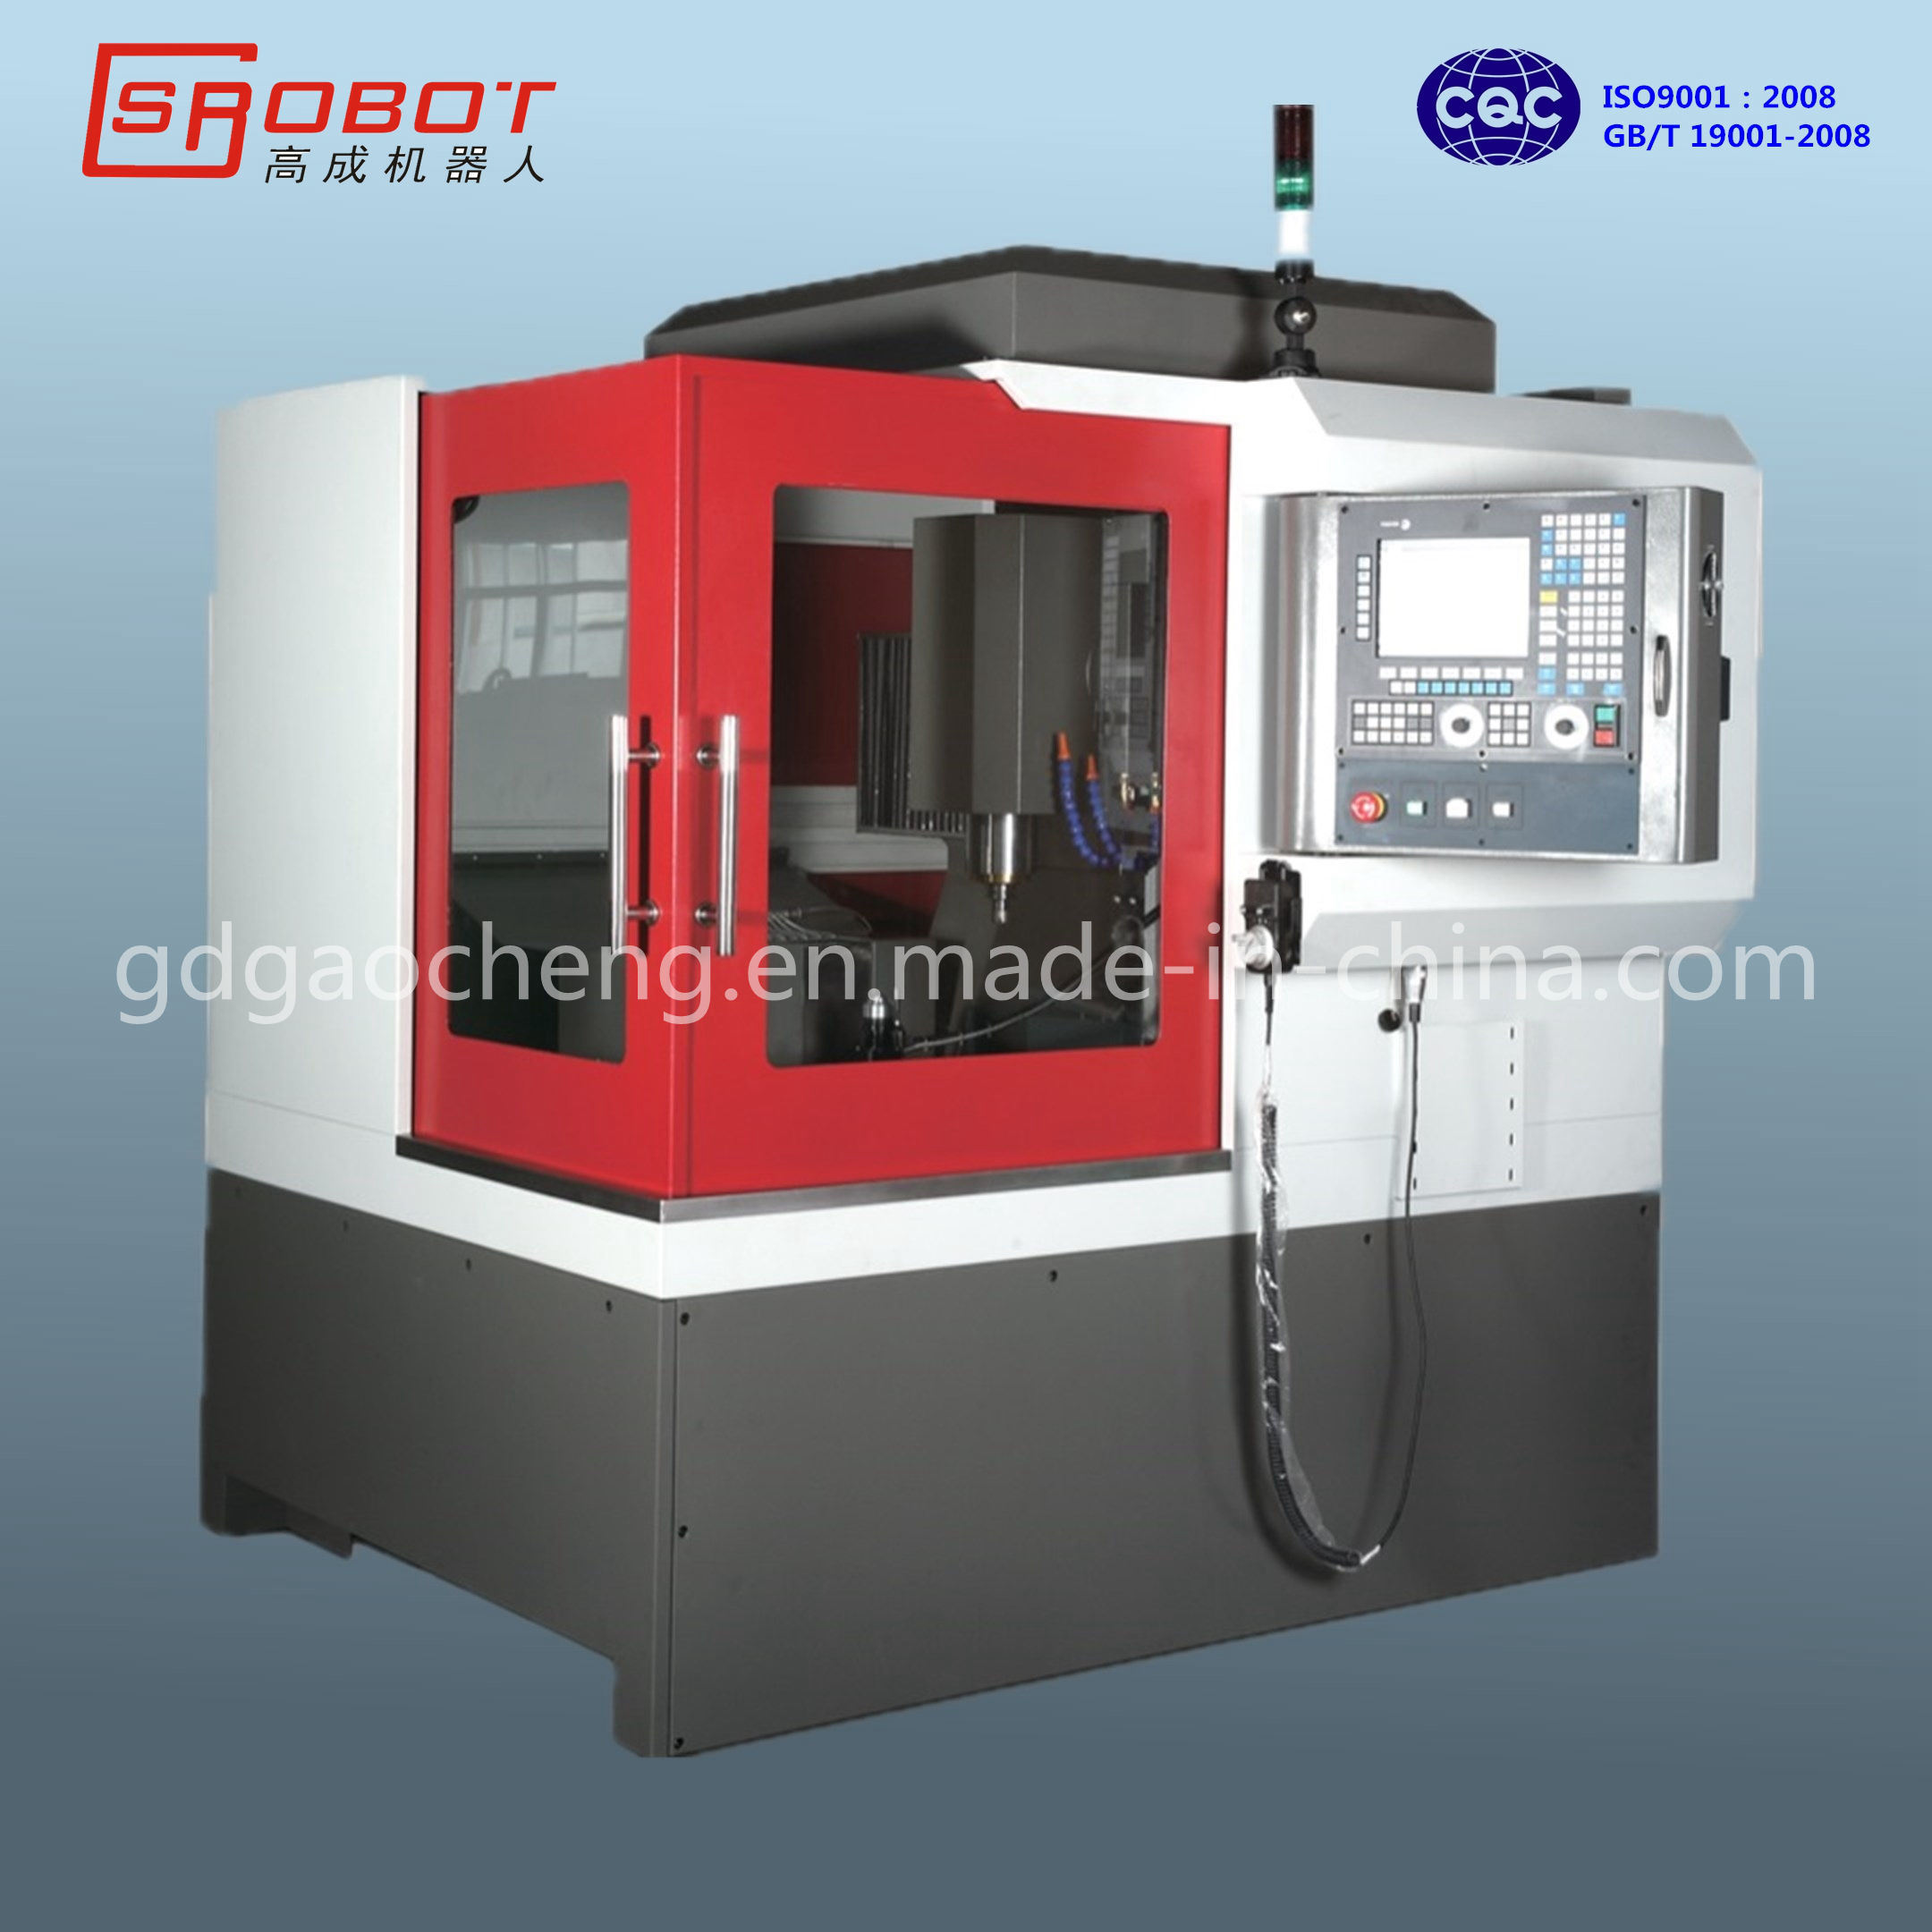 CNC Milling and Engraving Machine for Small Metal Processing GS-E500